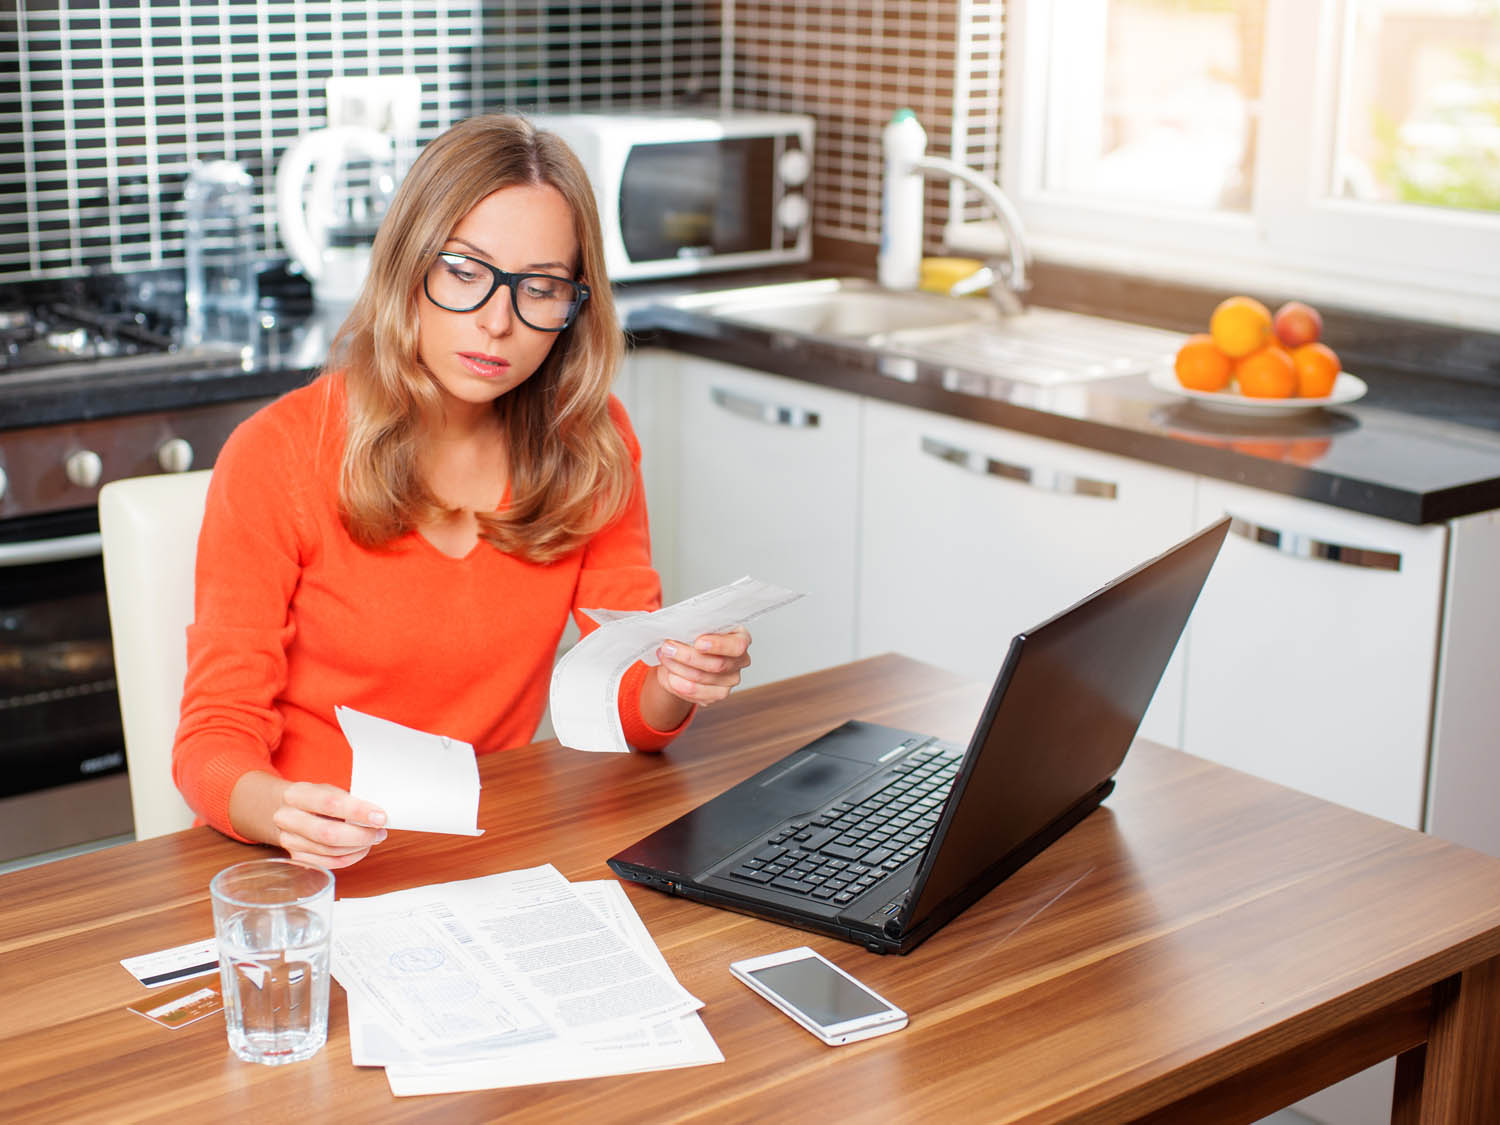 Whether you want to combine all your payments, lower your interest rate, or just save some money, a balance transfer credit card may be right for you.